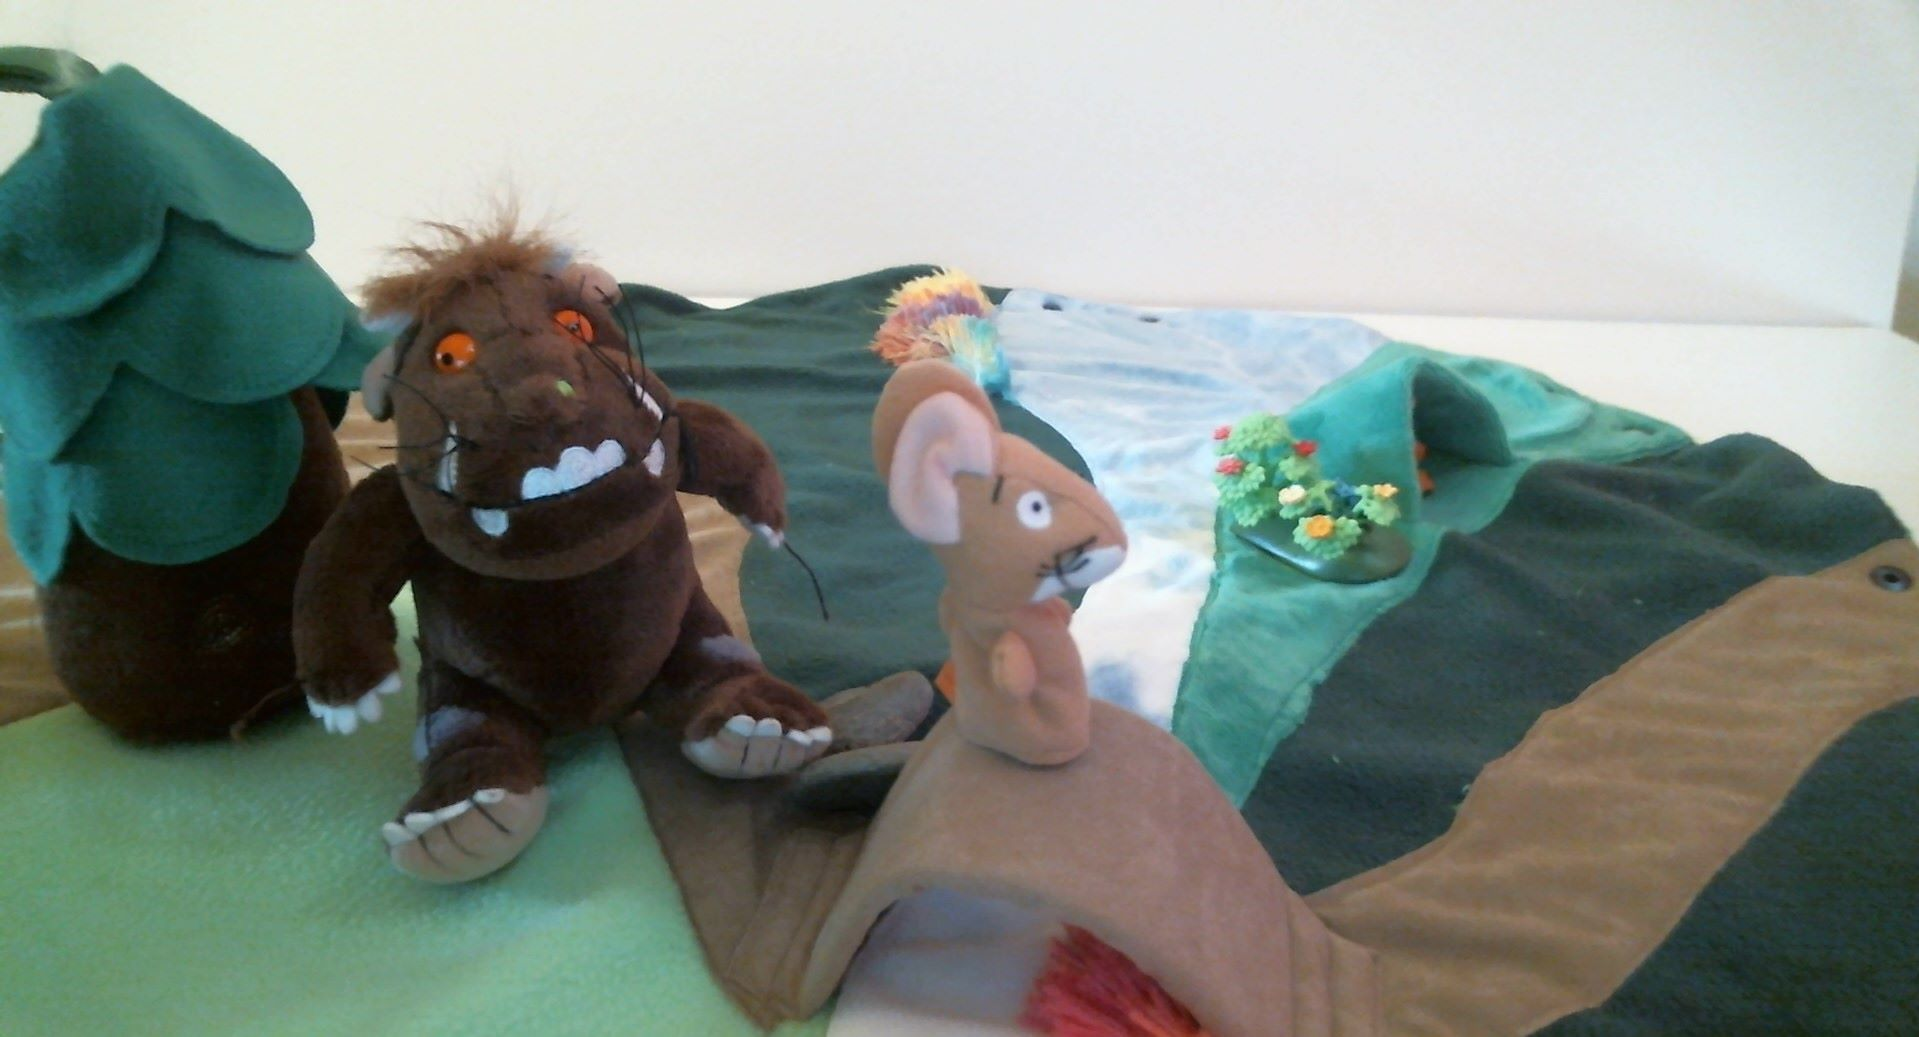 The PlayBag Co retells The Gruffalo